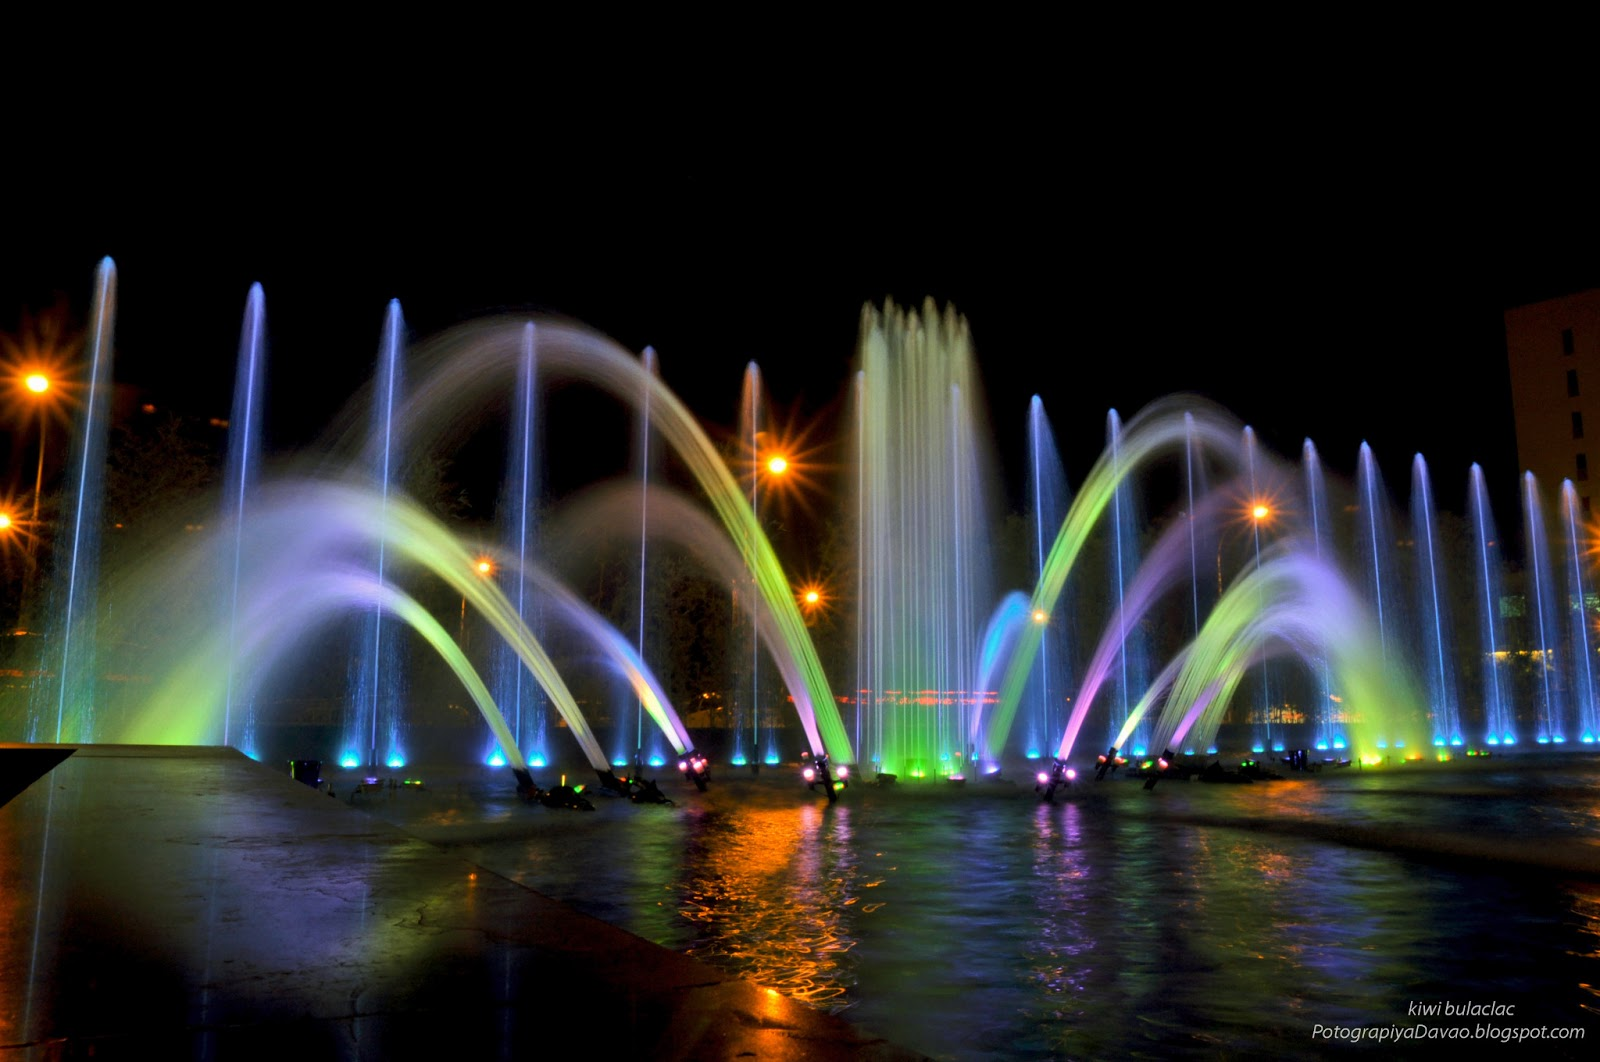 davao city dating places Top places to visit in davao city, philippines: see tripadvisor's 5,478 traveller reviews and photos of davao city attractions.